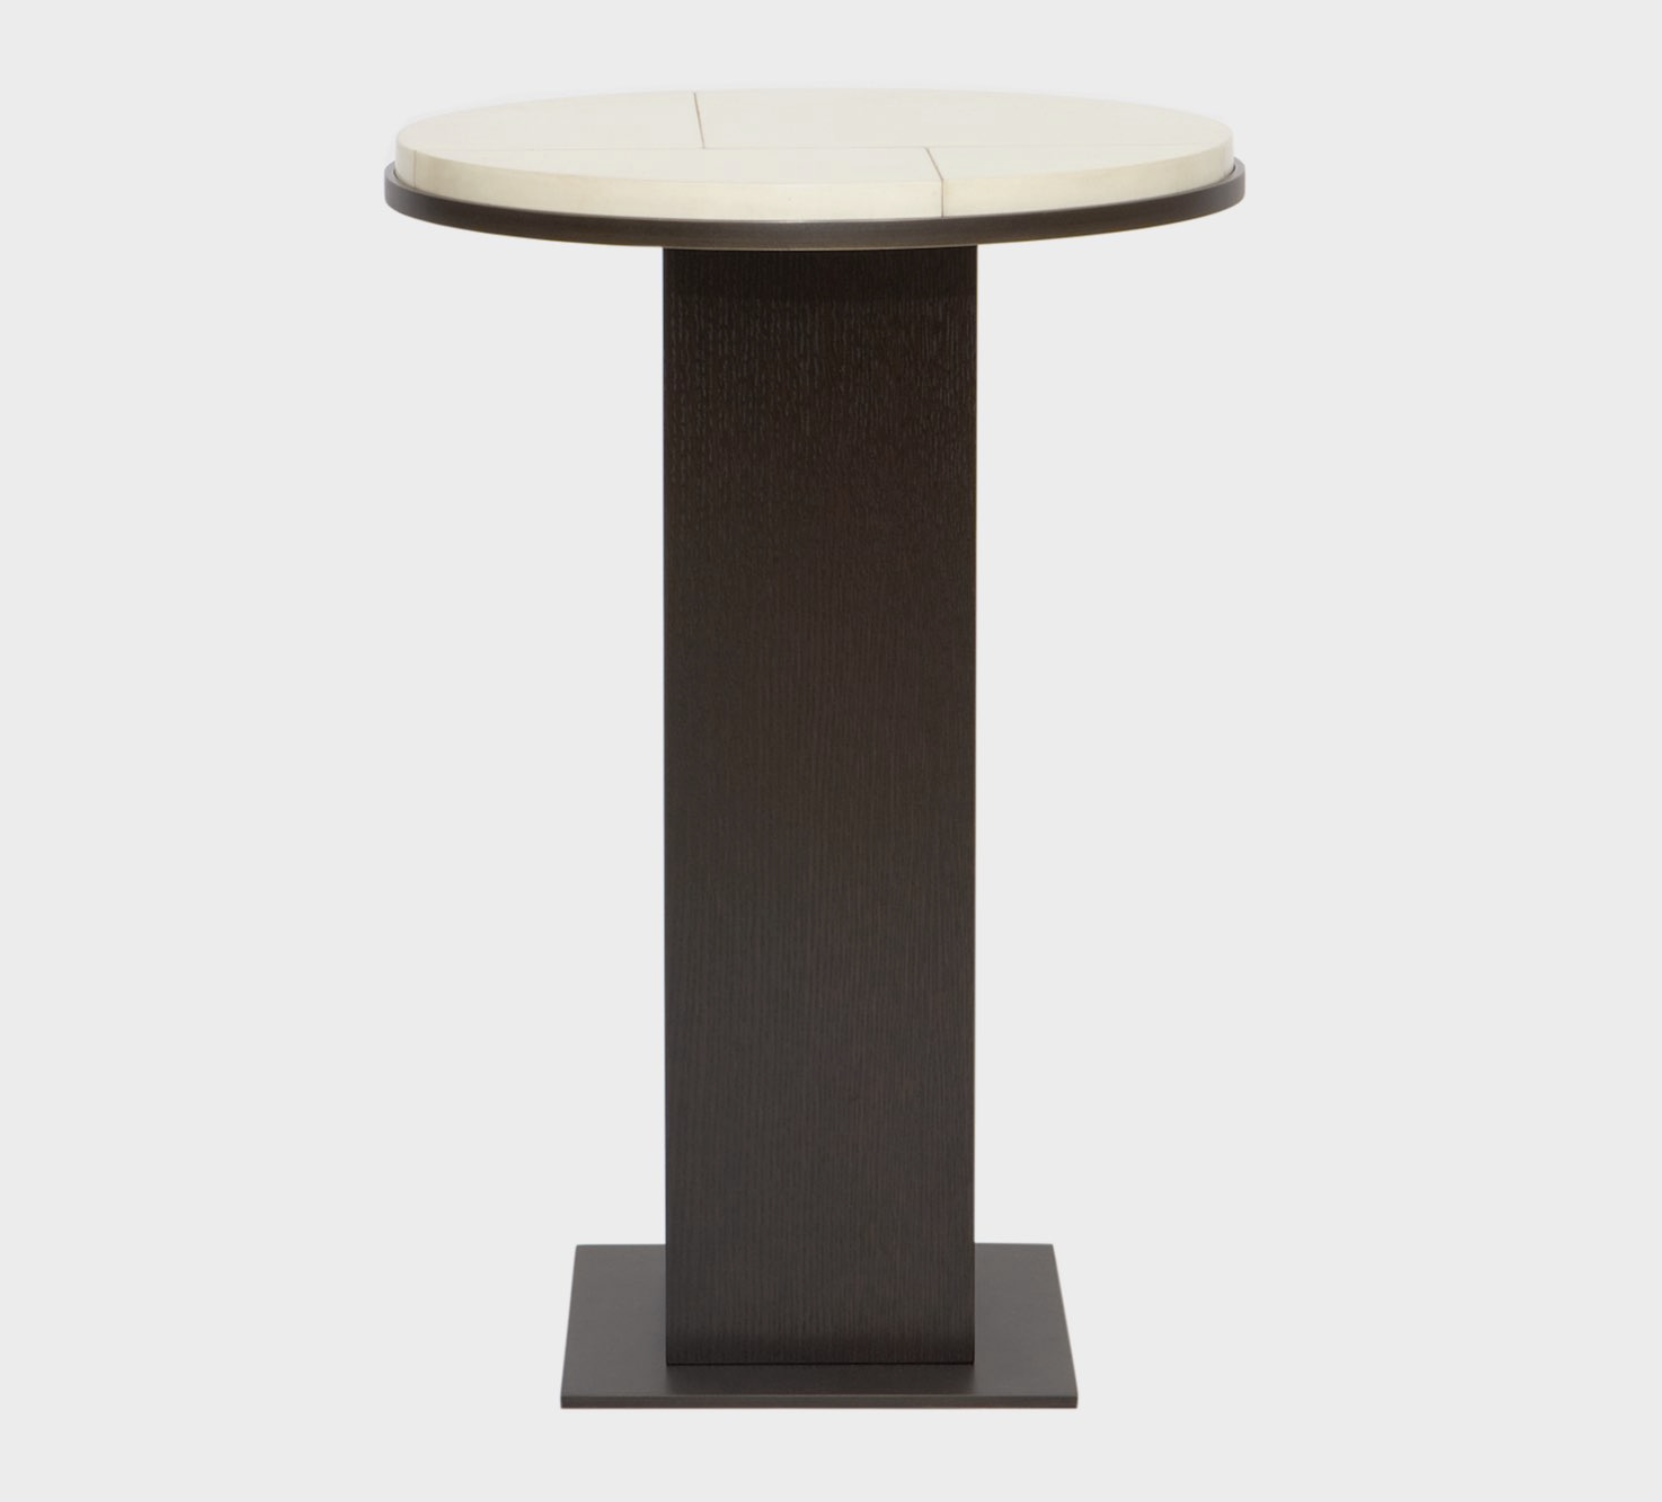 Aguirre Design - Go Side Table - Parchment, brass and Oak